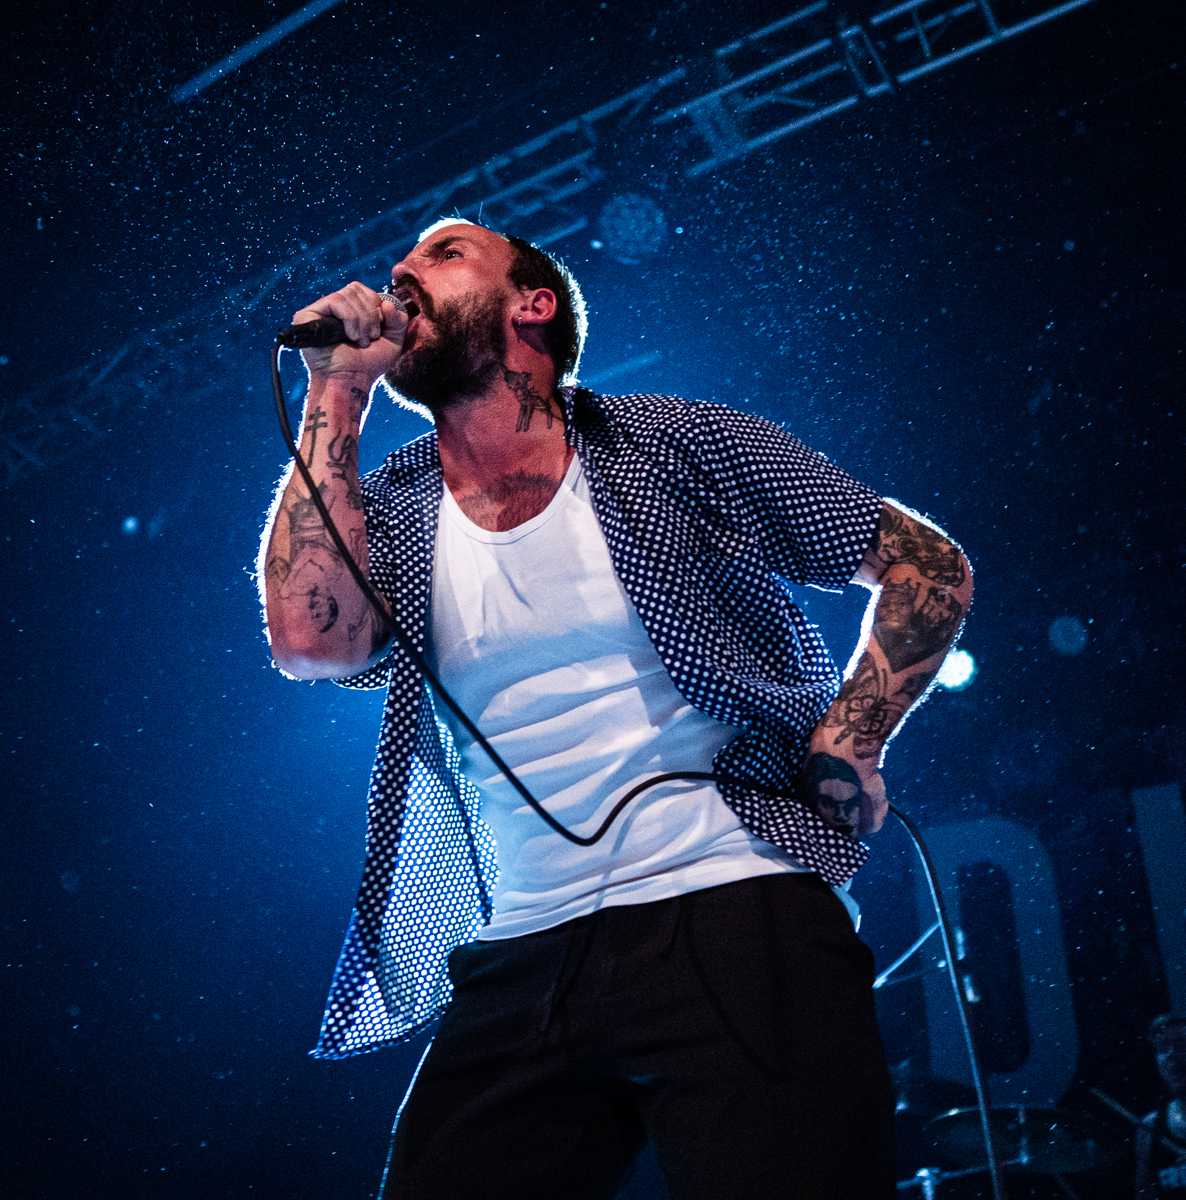 Idles_FirstAvenue_080319_Chris_Goyette_15